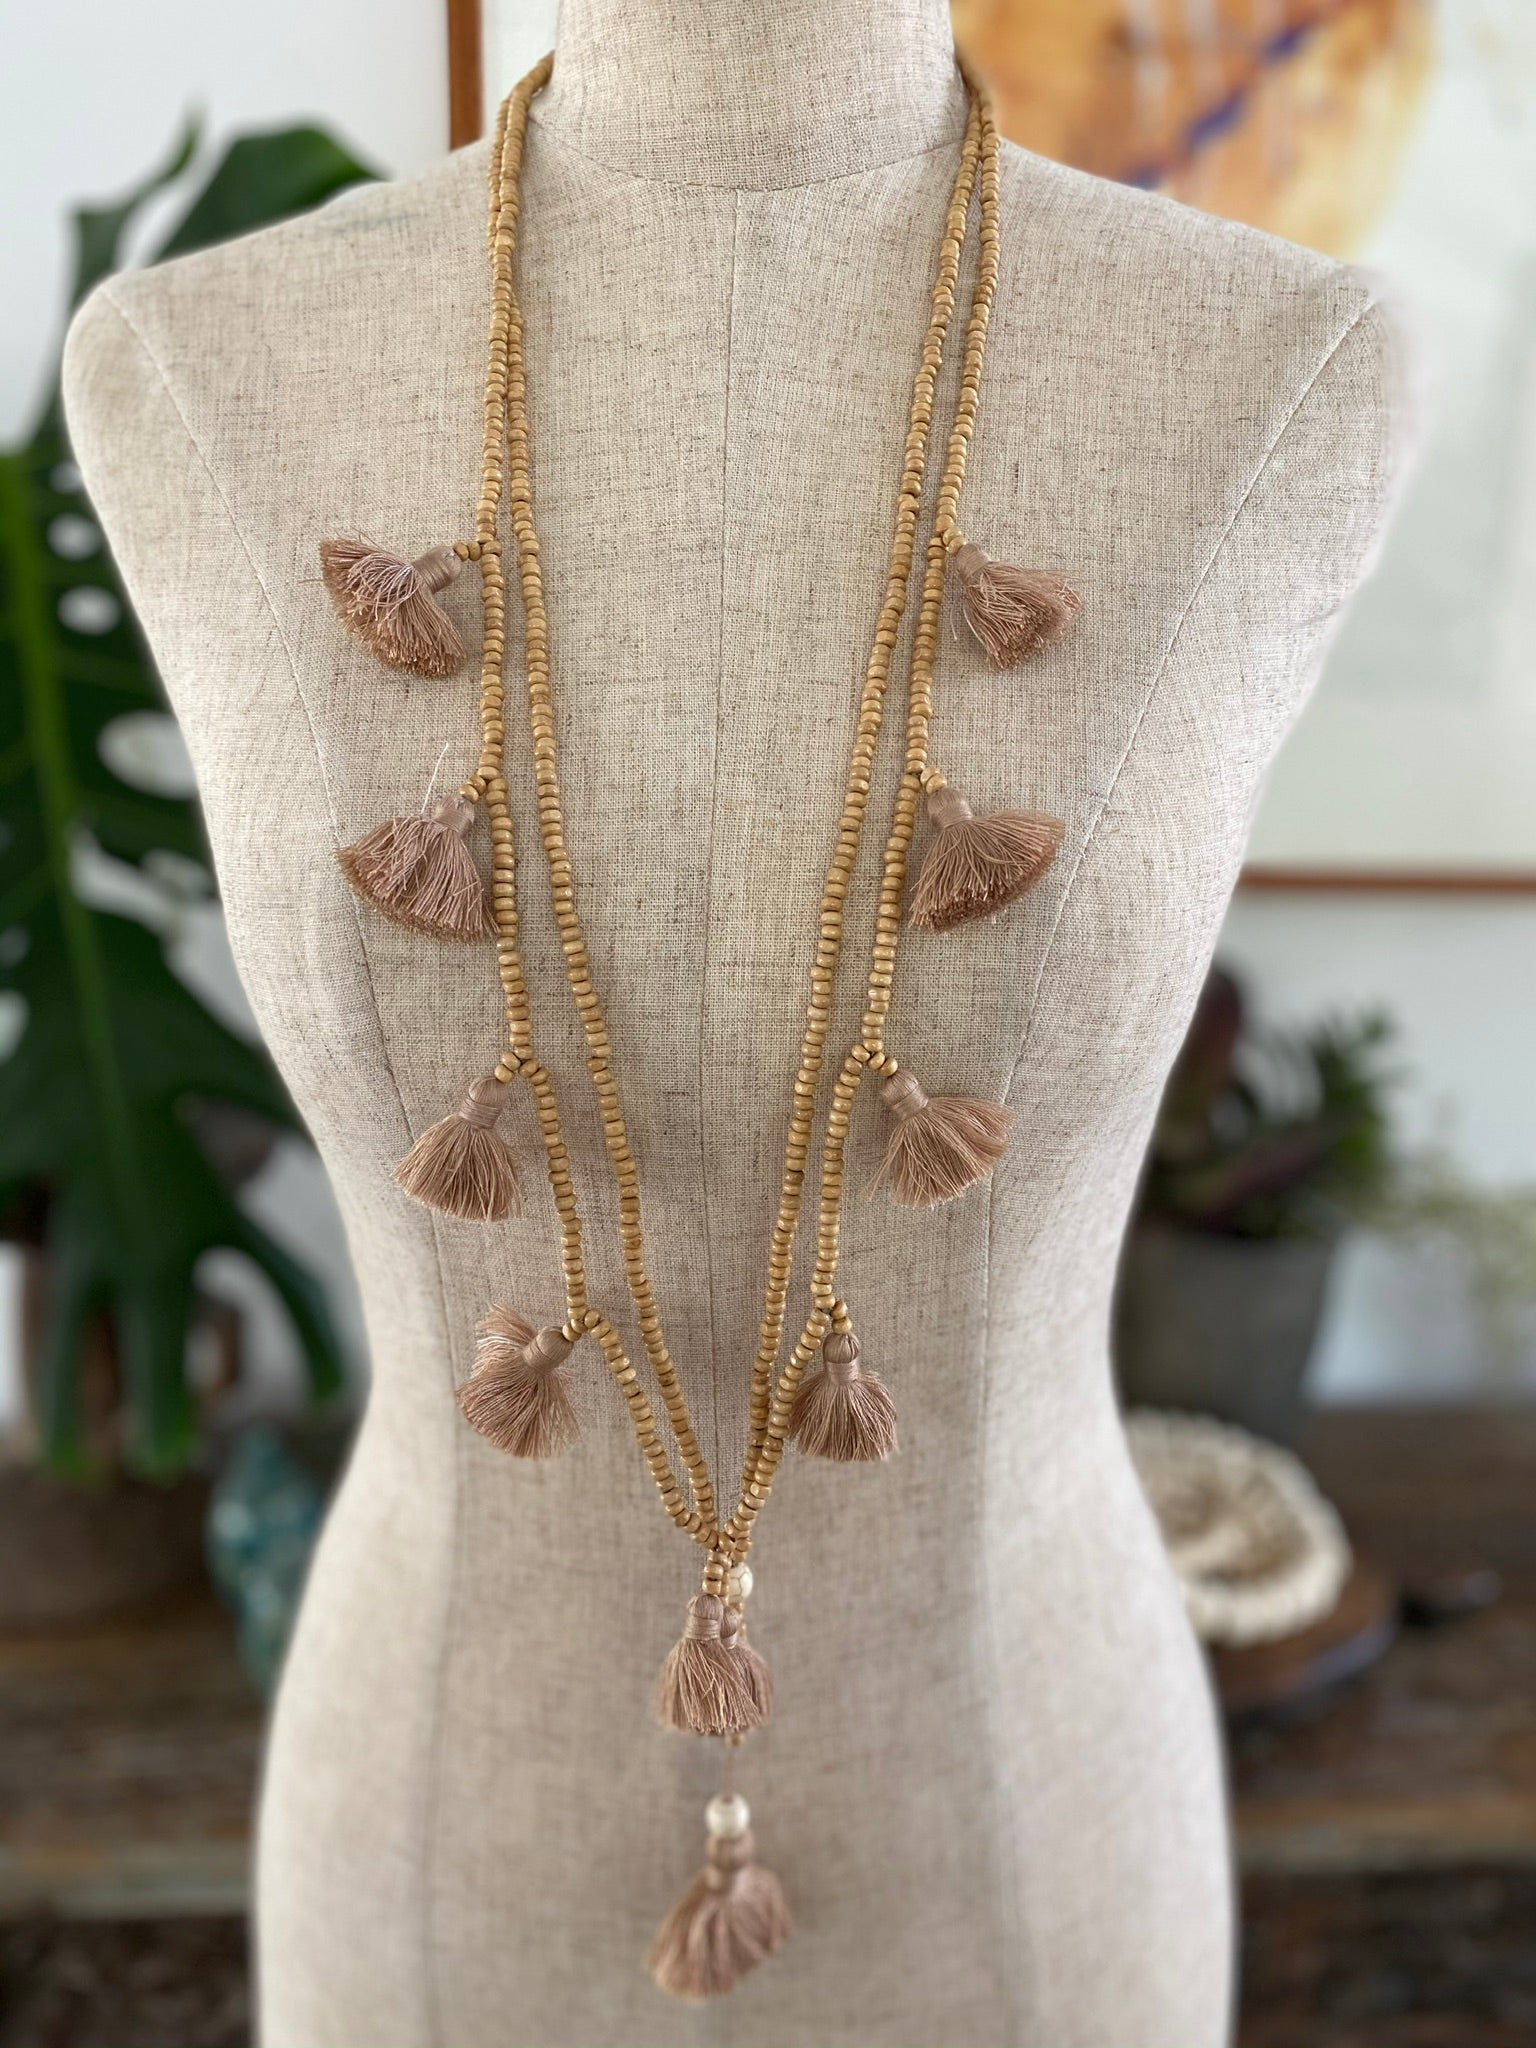 Tassel Necklace - Double Strand